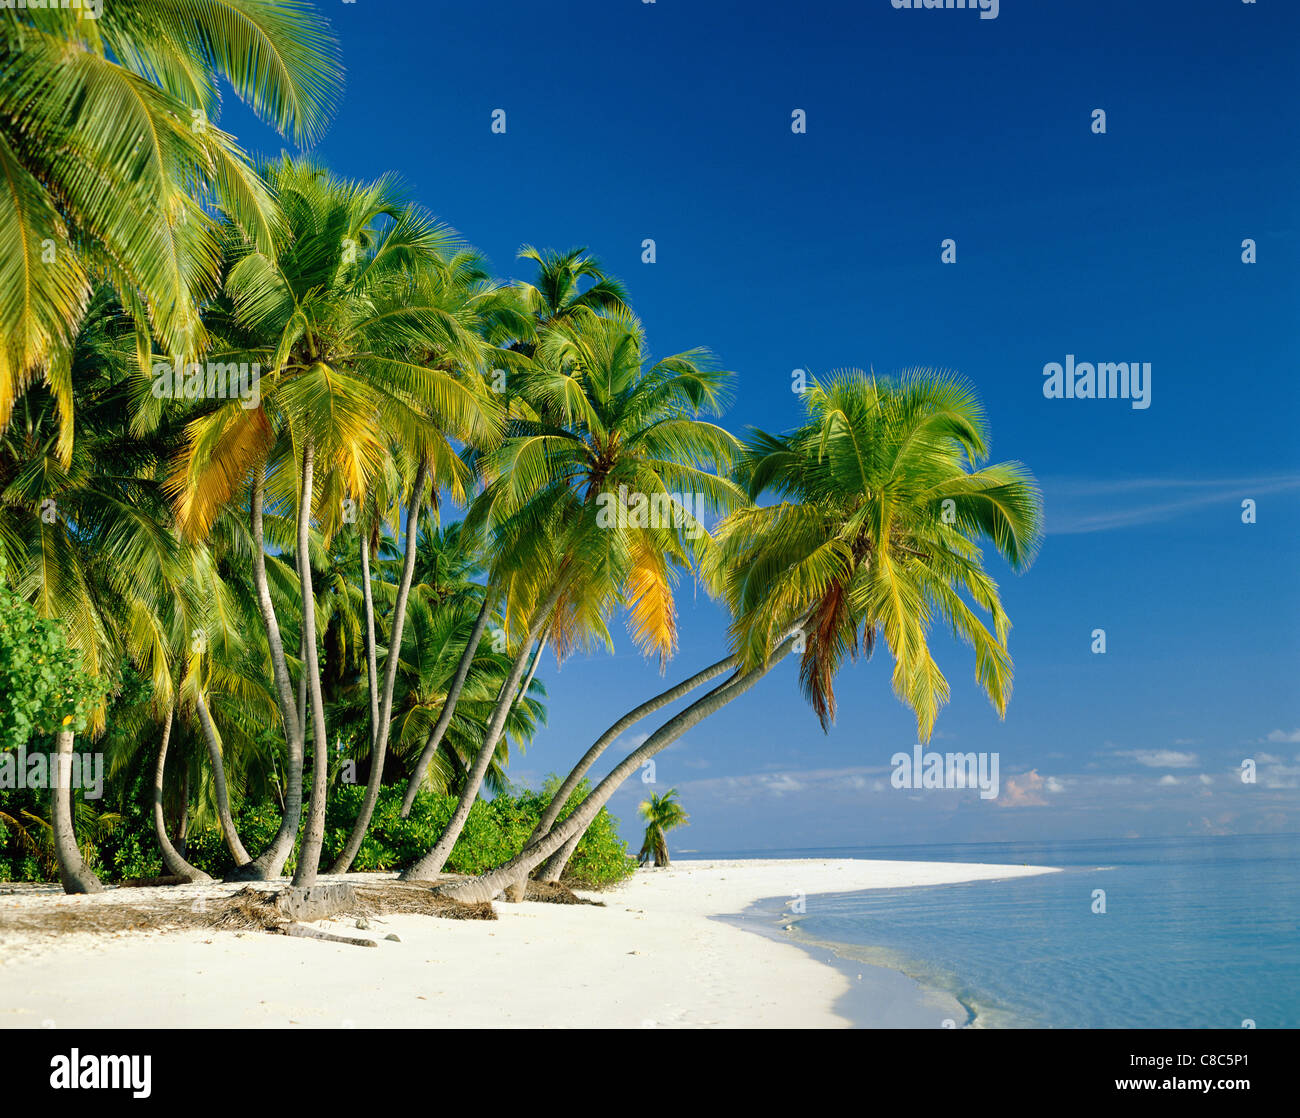 Atoll, Palm Trees & Tropical Beach, Maldive Islands - Stock Image